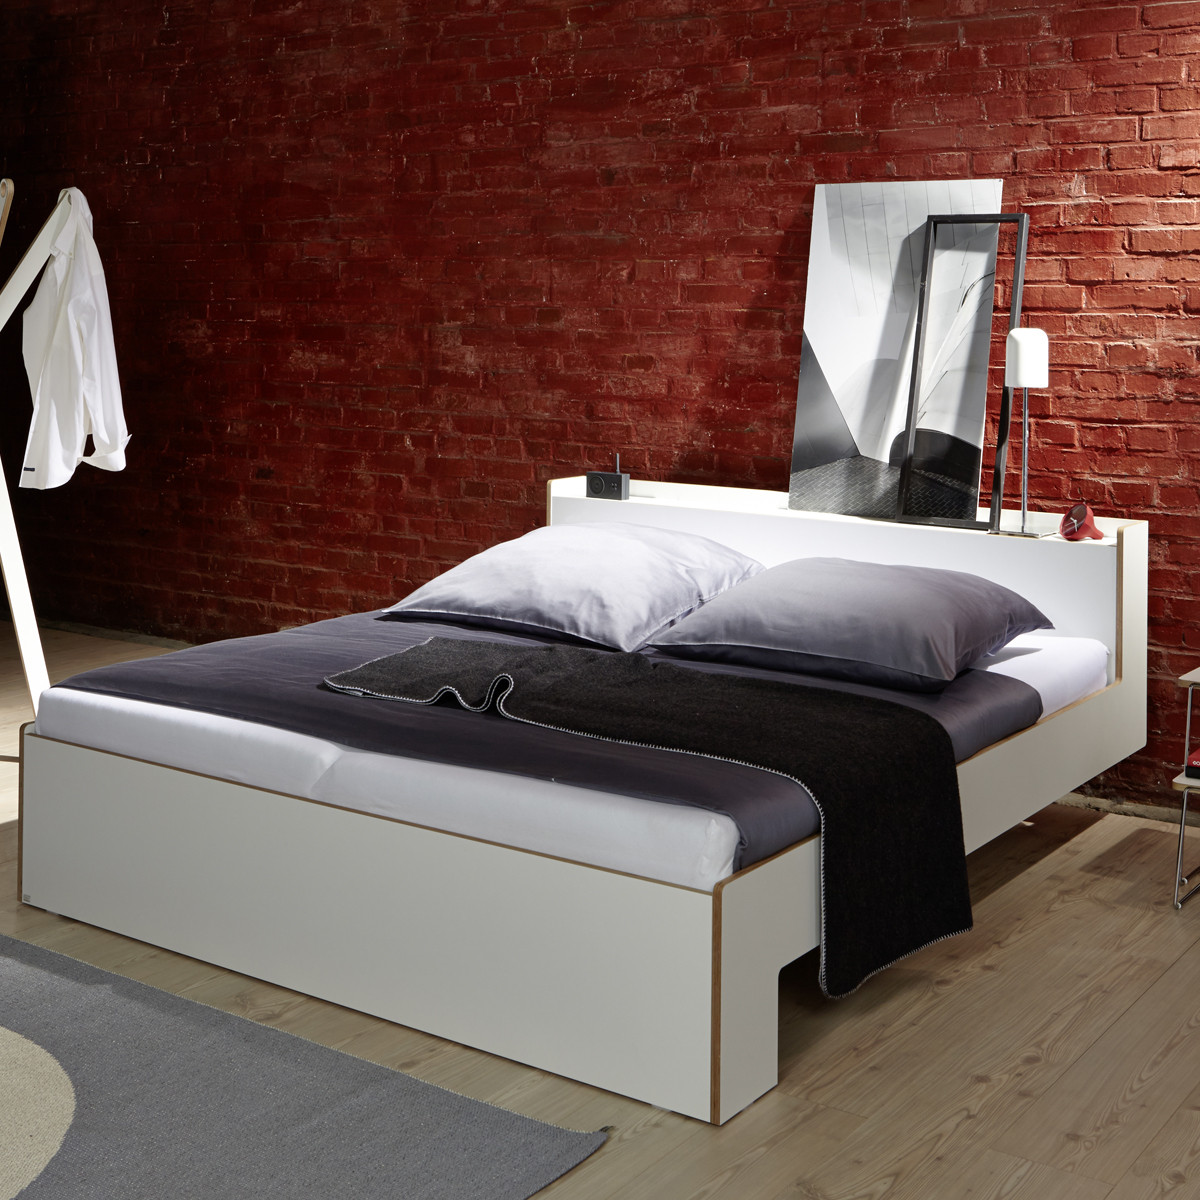 m ller m belwerkst tten nook doppelbett wei casa de. Black Bedroom Furniture Sets. Home Design Ideas